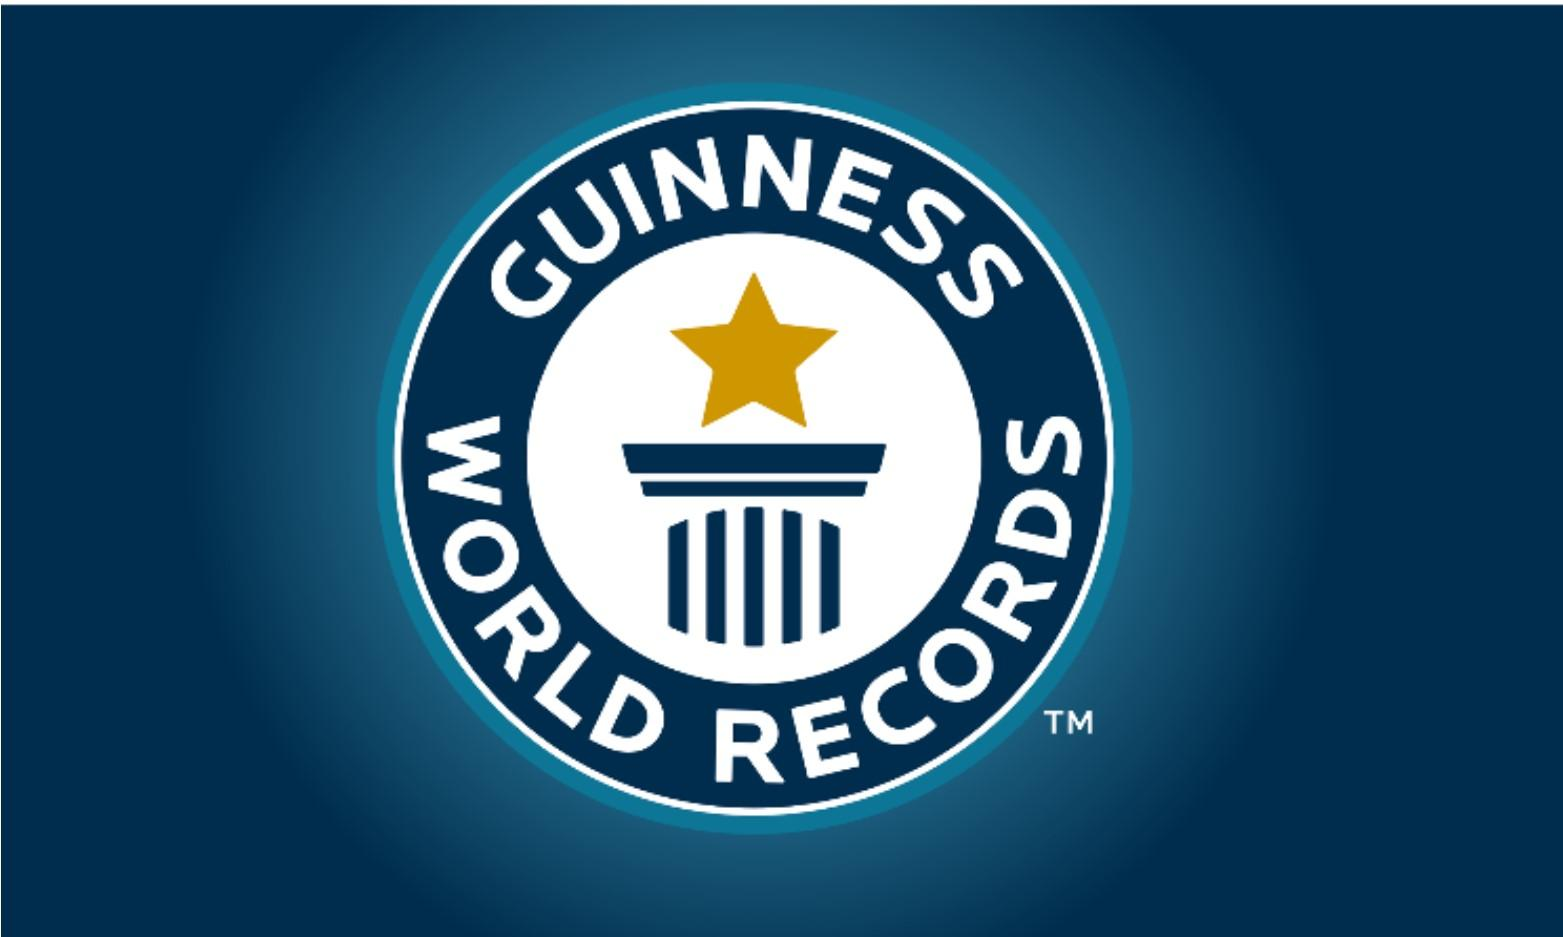 St David's Day World Record attempt in Swansea